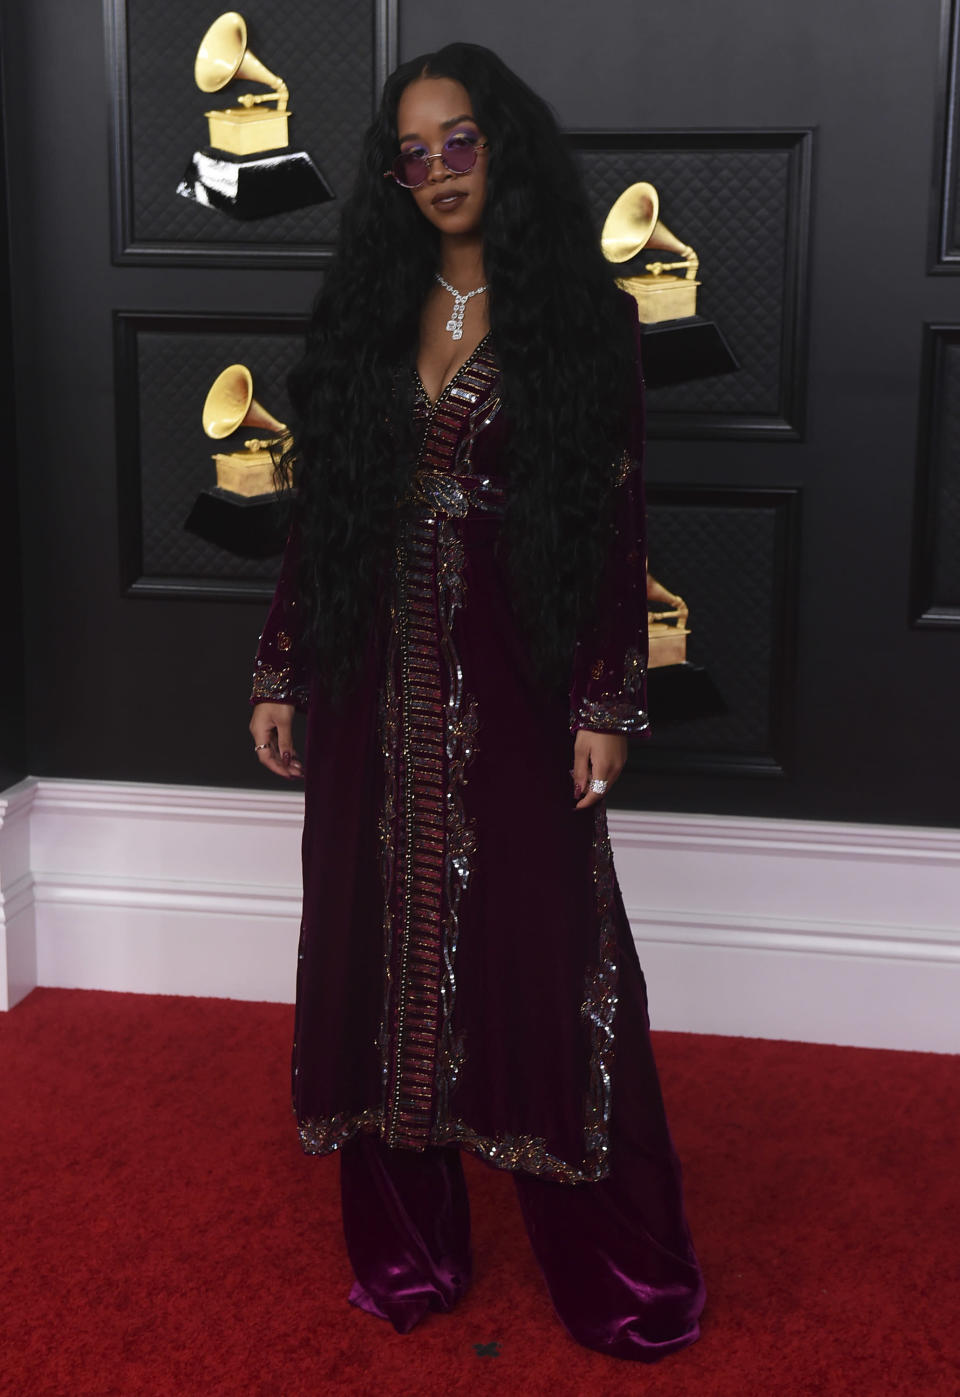 H.E.R. arrives at the 63rd annual Grammy Awards at the Los Angeles Convention Center on Sunday, March 14, 2021. (Photo by Jordan Strauss/Invision/AP)